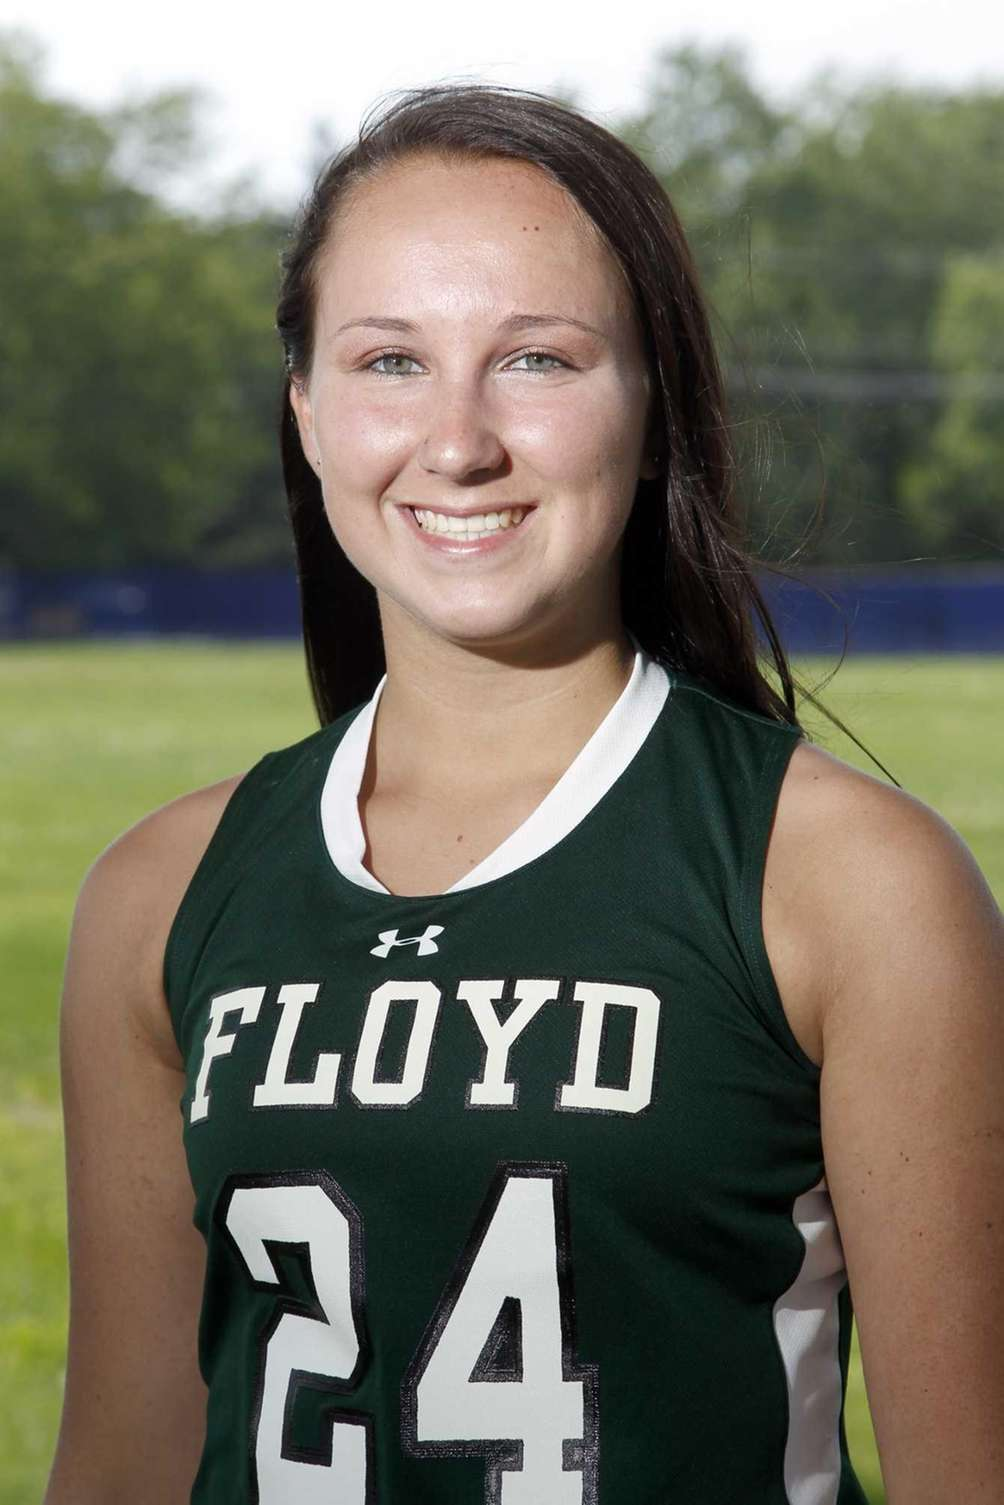 COURTNEY MURPHY Floyd, Midfielder, Sr. She tied for